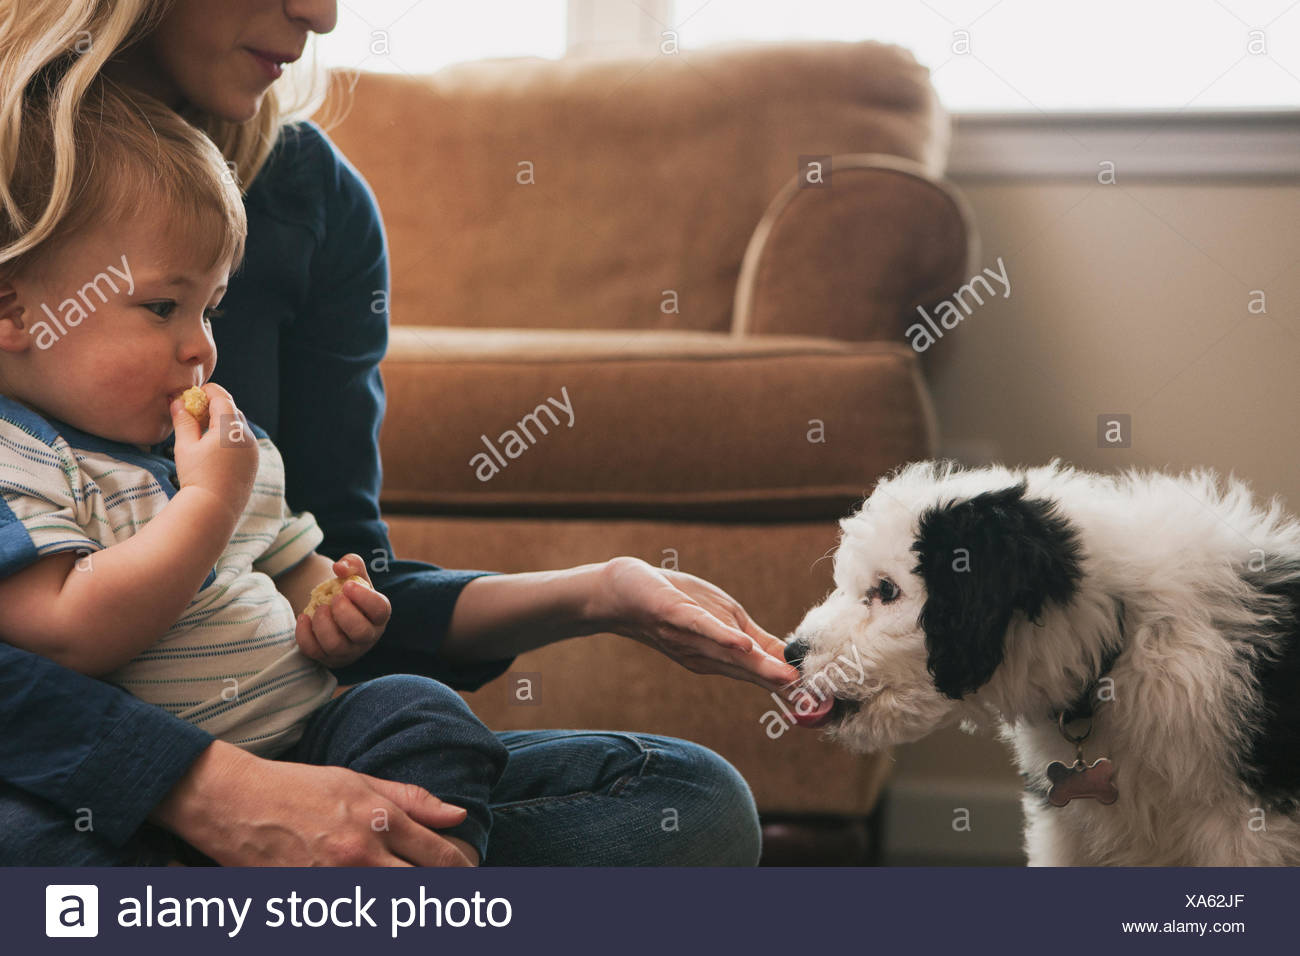 Mother and son watching dog licking hand - Stock Image